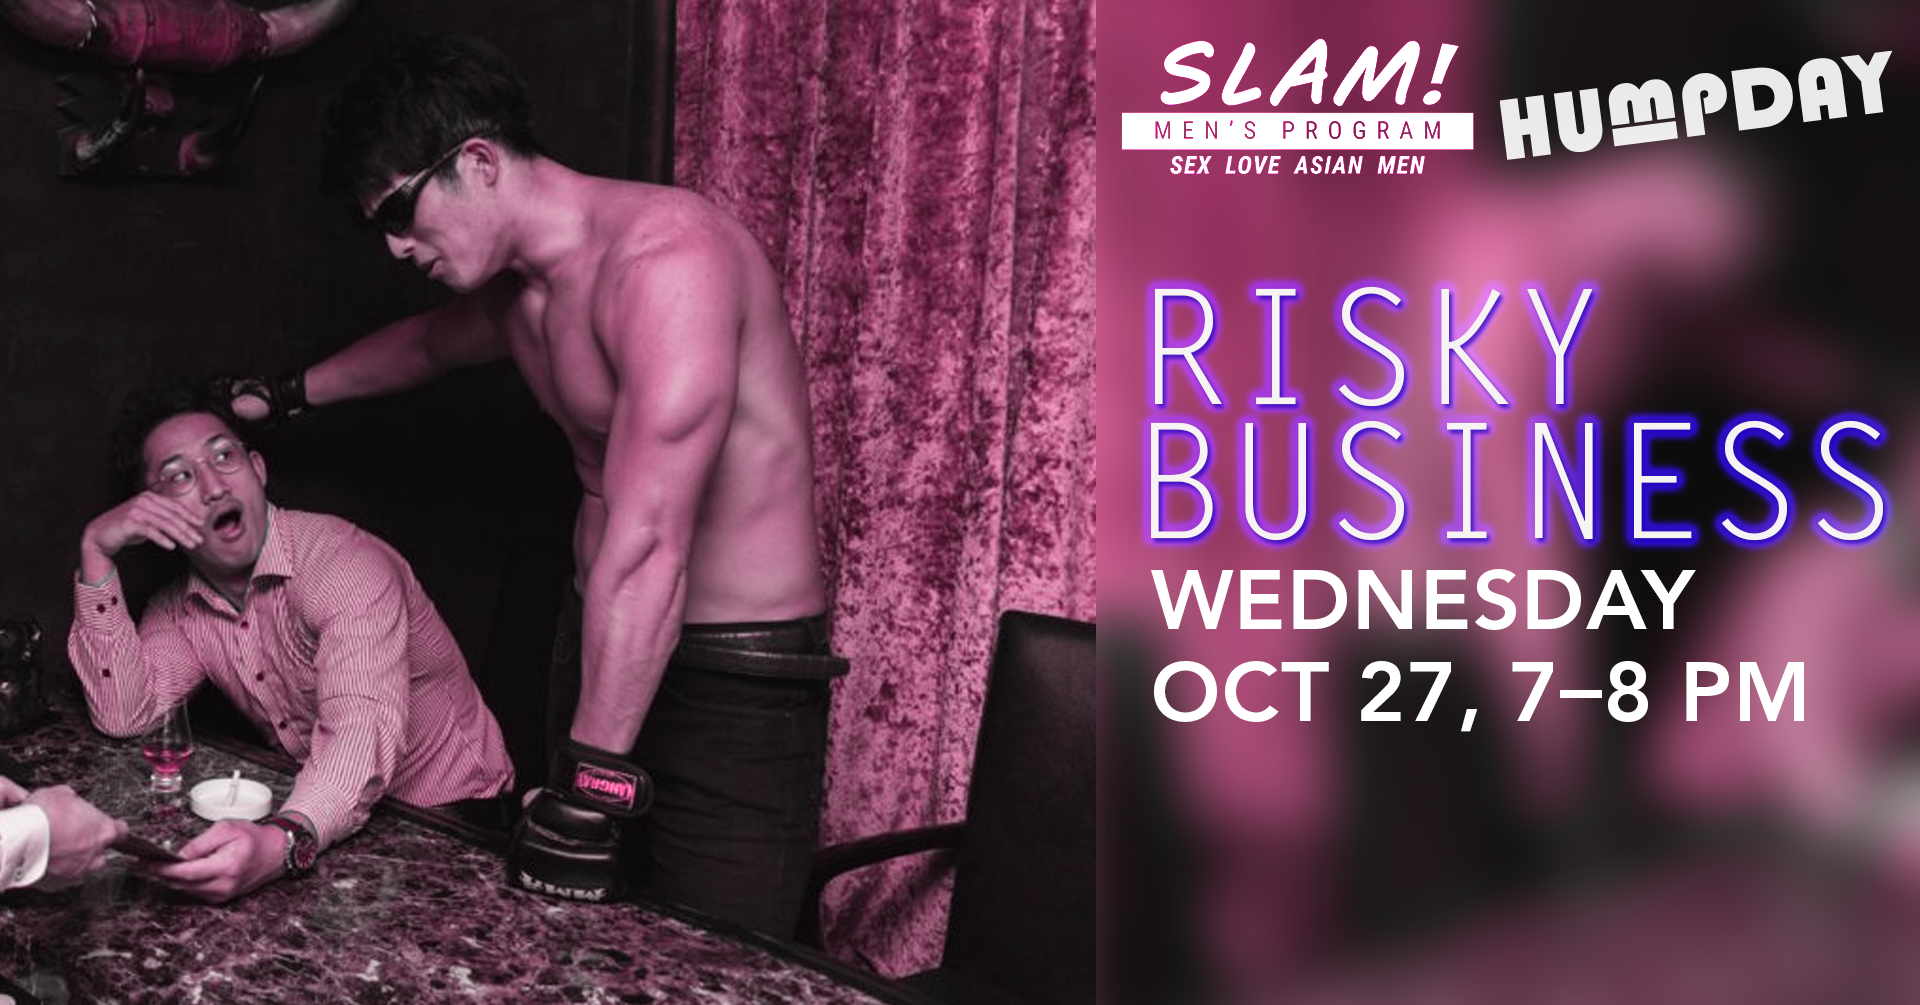 humpday poster for oct 27